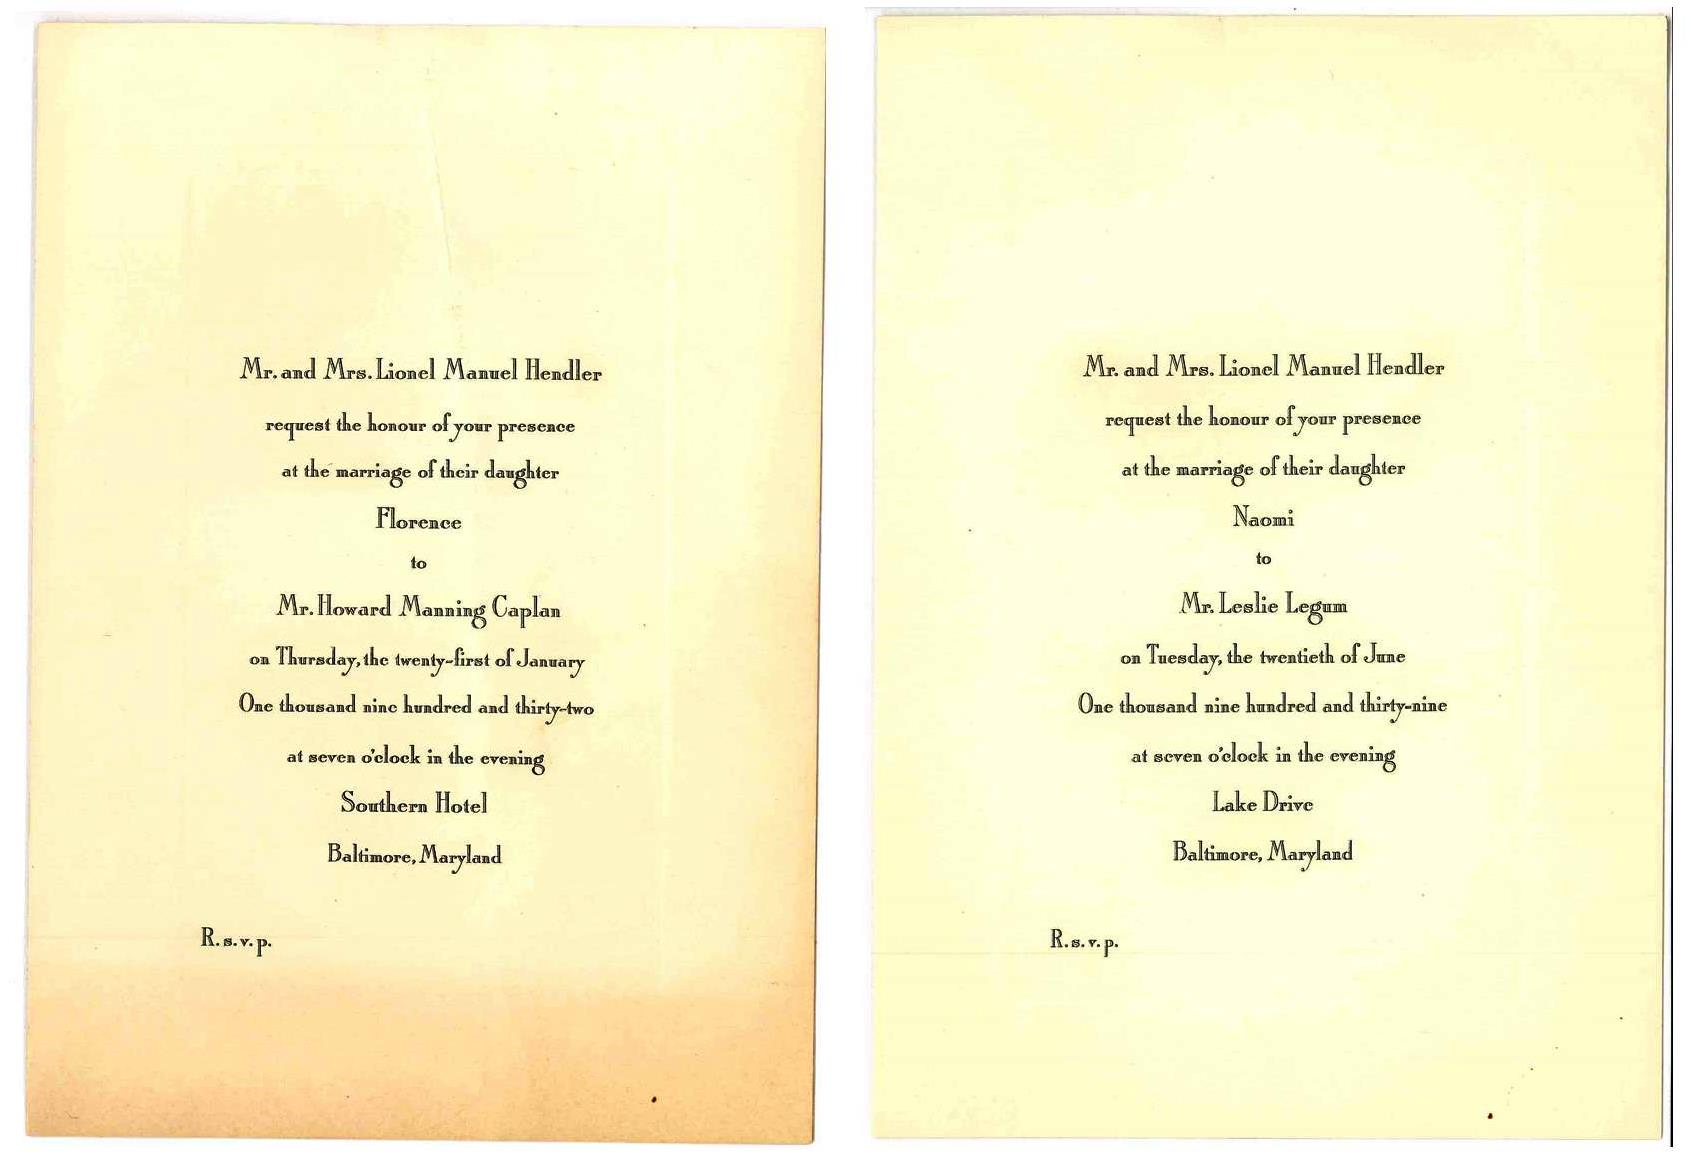 Invitations To Florence's 1932 Wedding (left) And Naomi's 1939 Wedding  (right)